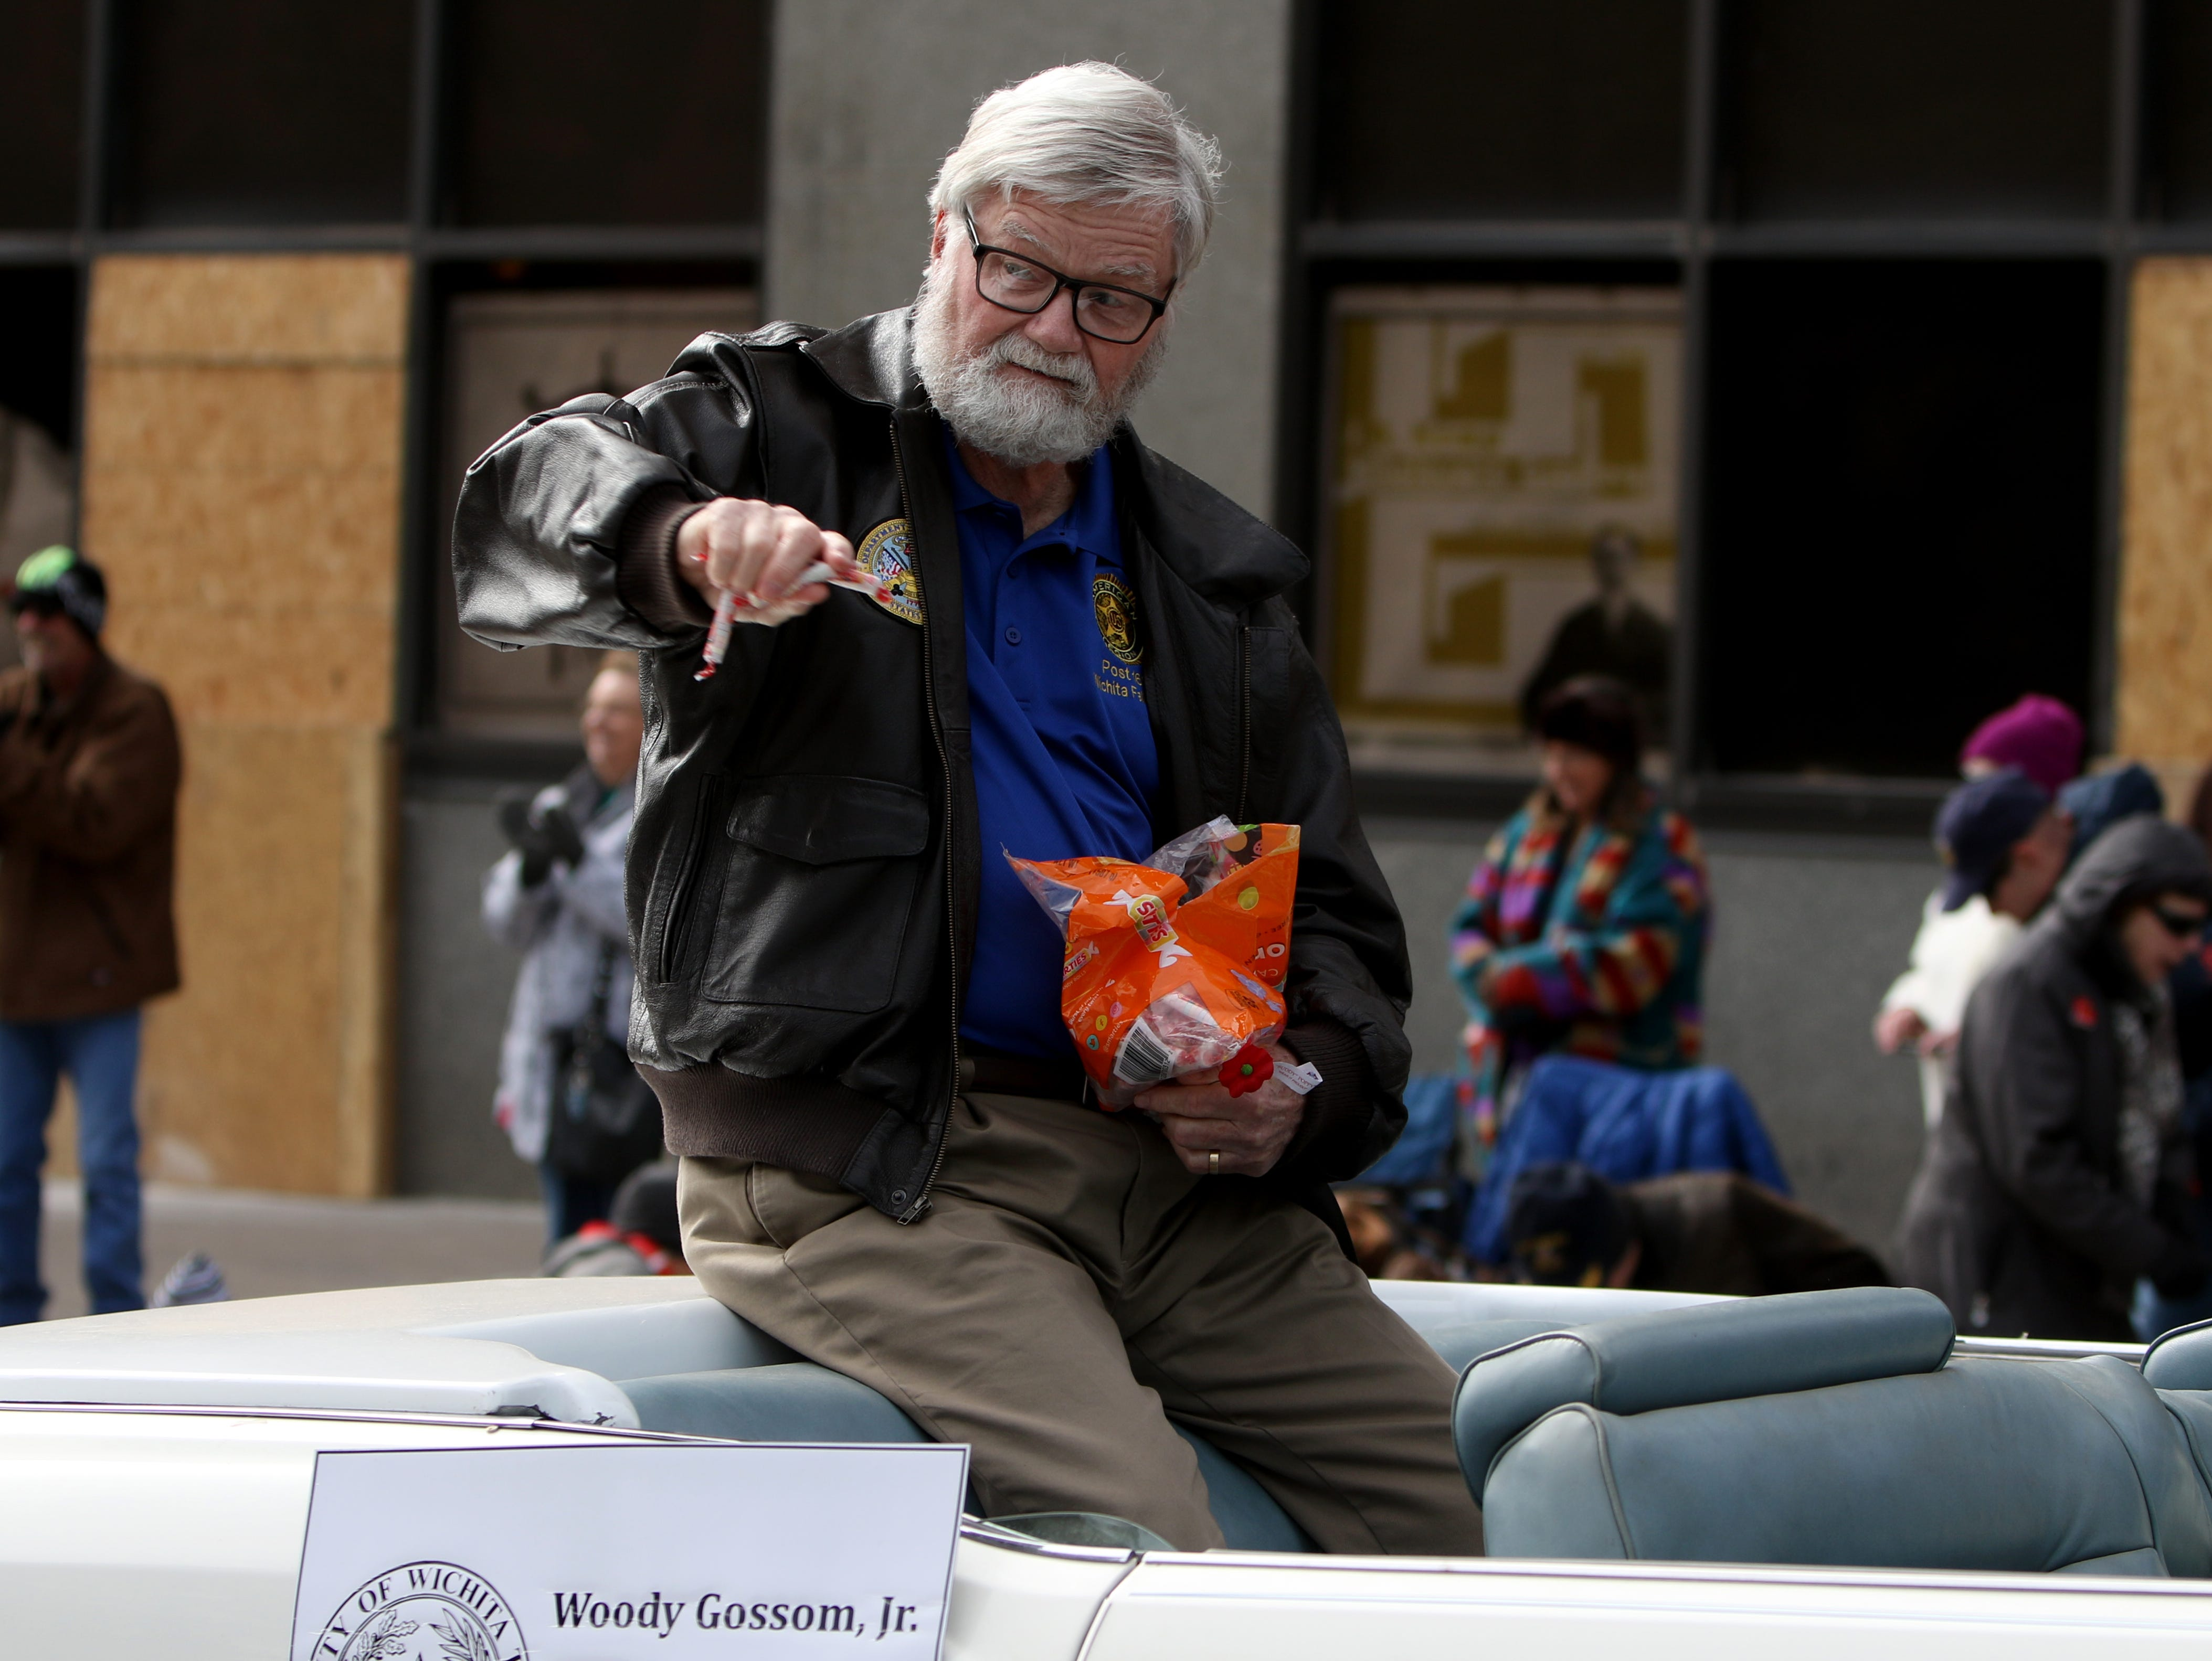 Wichita County Judge Woody Gossom takes part in the Veterans Day parade Saturday, Nov. 10, 2018, in downtown Wichita Falls on the 100th anniversary of the Armistice of Compiègne that ended fighting in World War I.